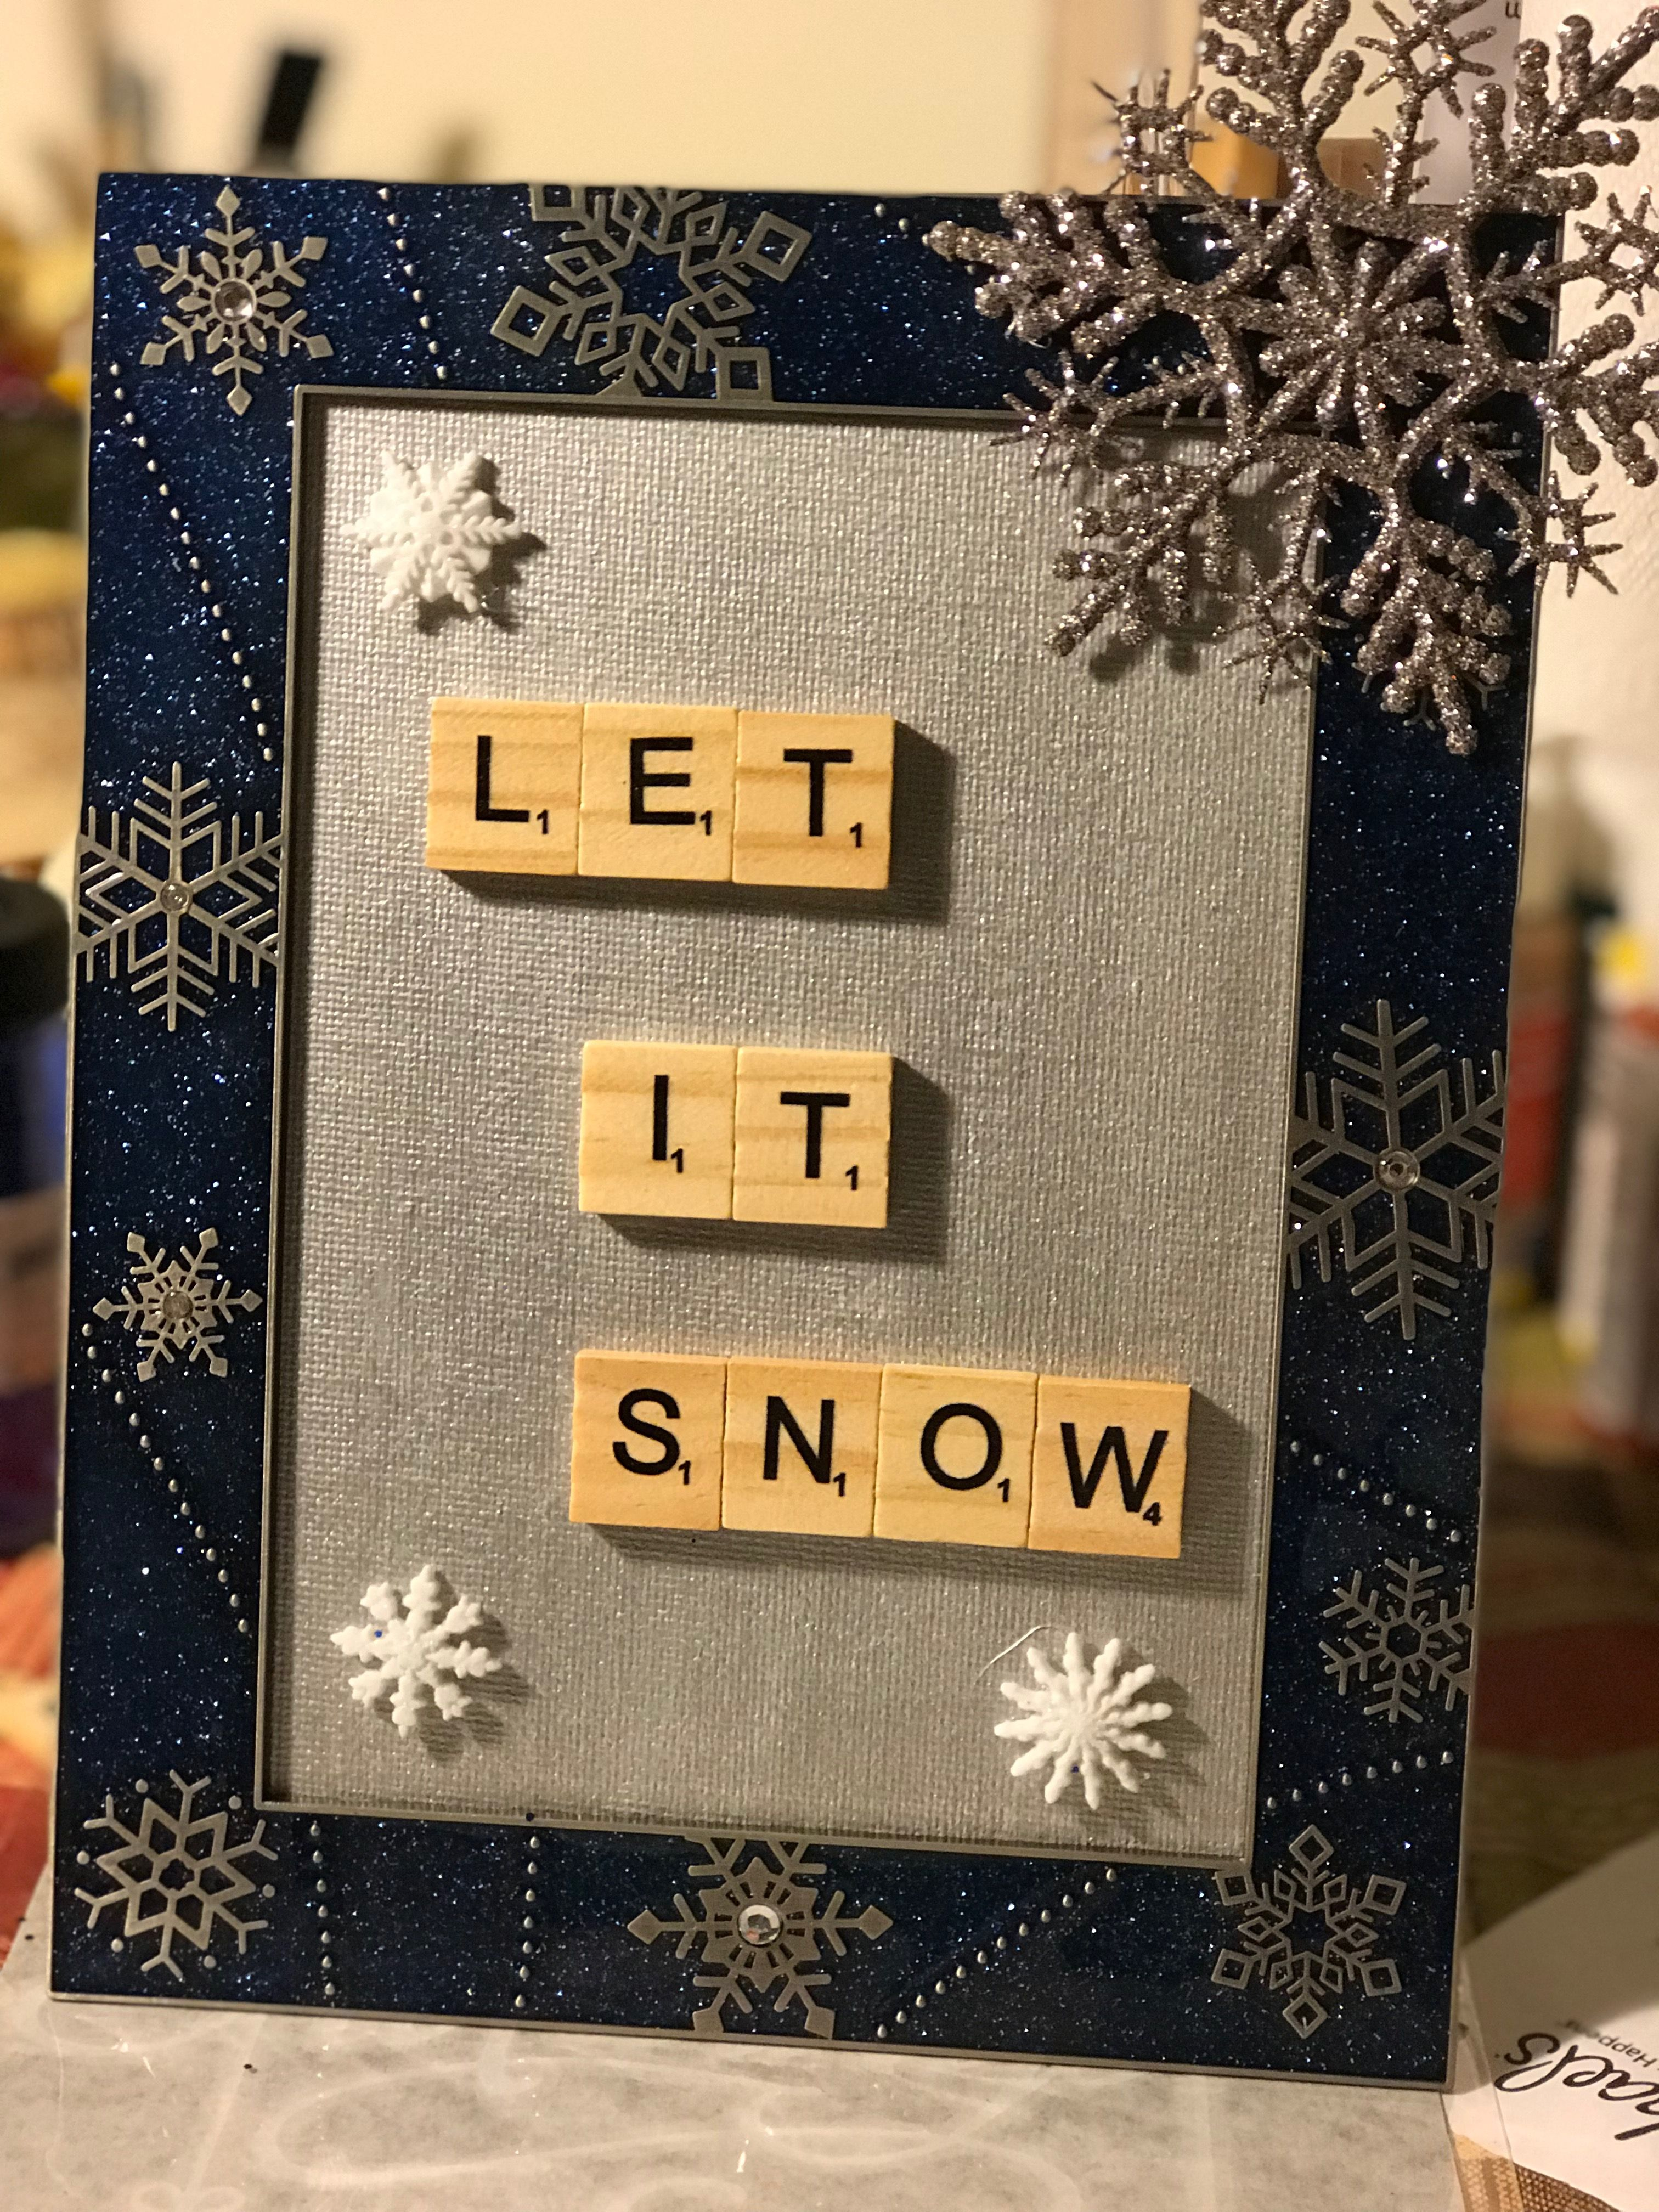 Pin Darlene Scoggins Scrabble Crafts Tile